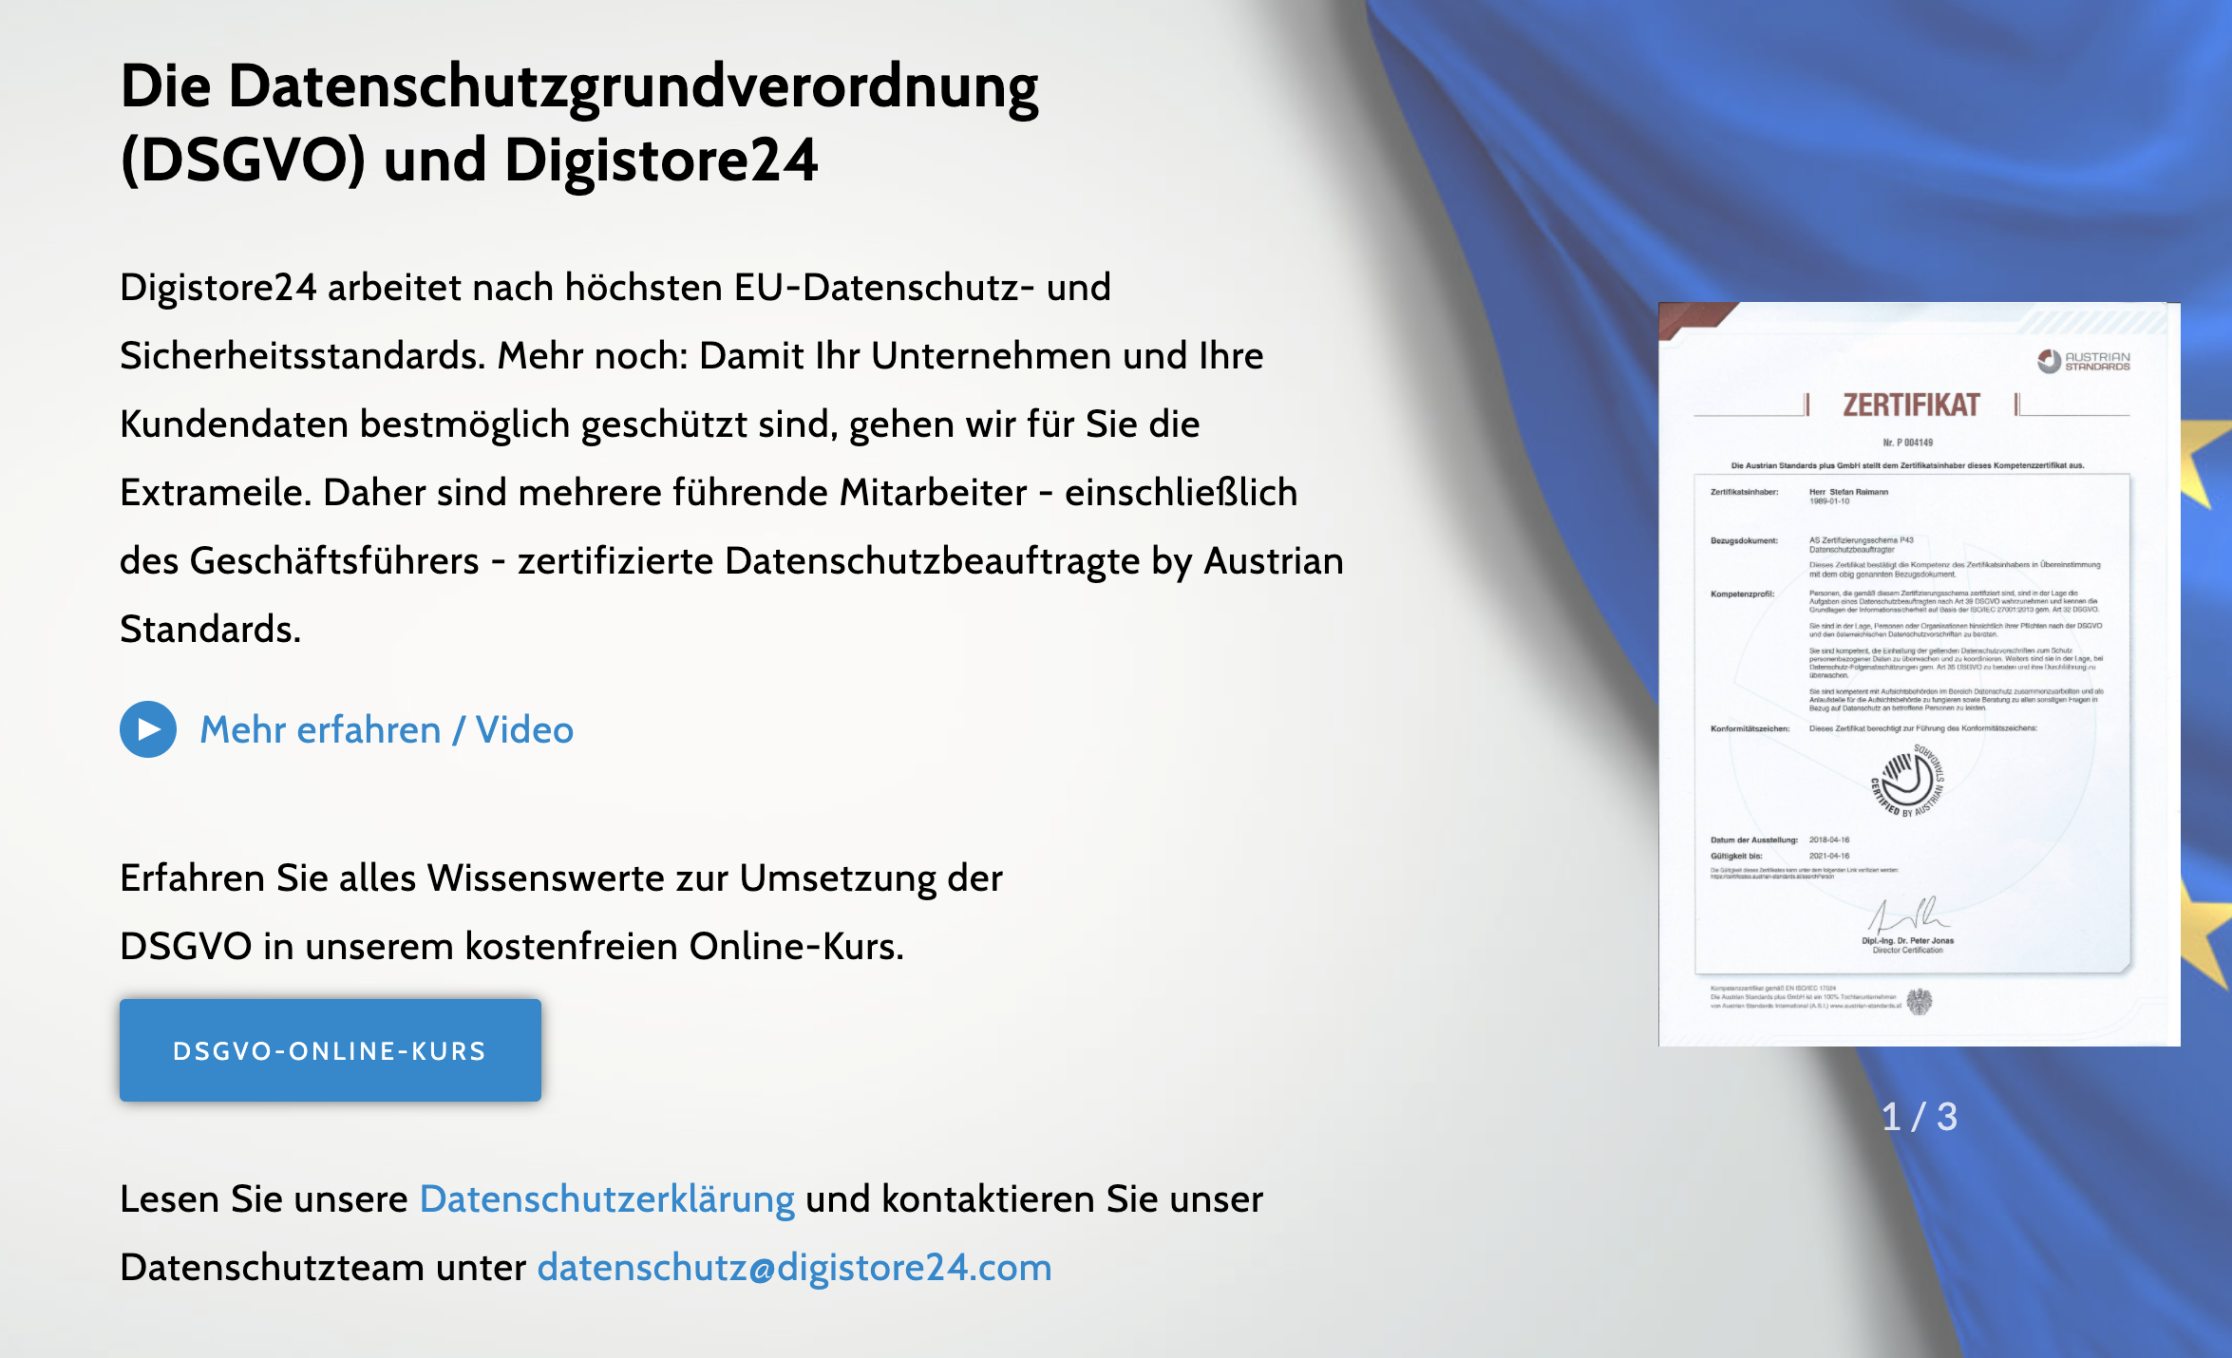 Digistore24's German website shows their GDPR certificate